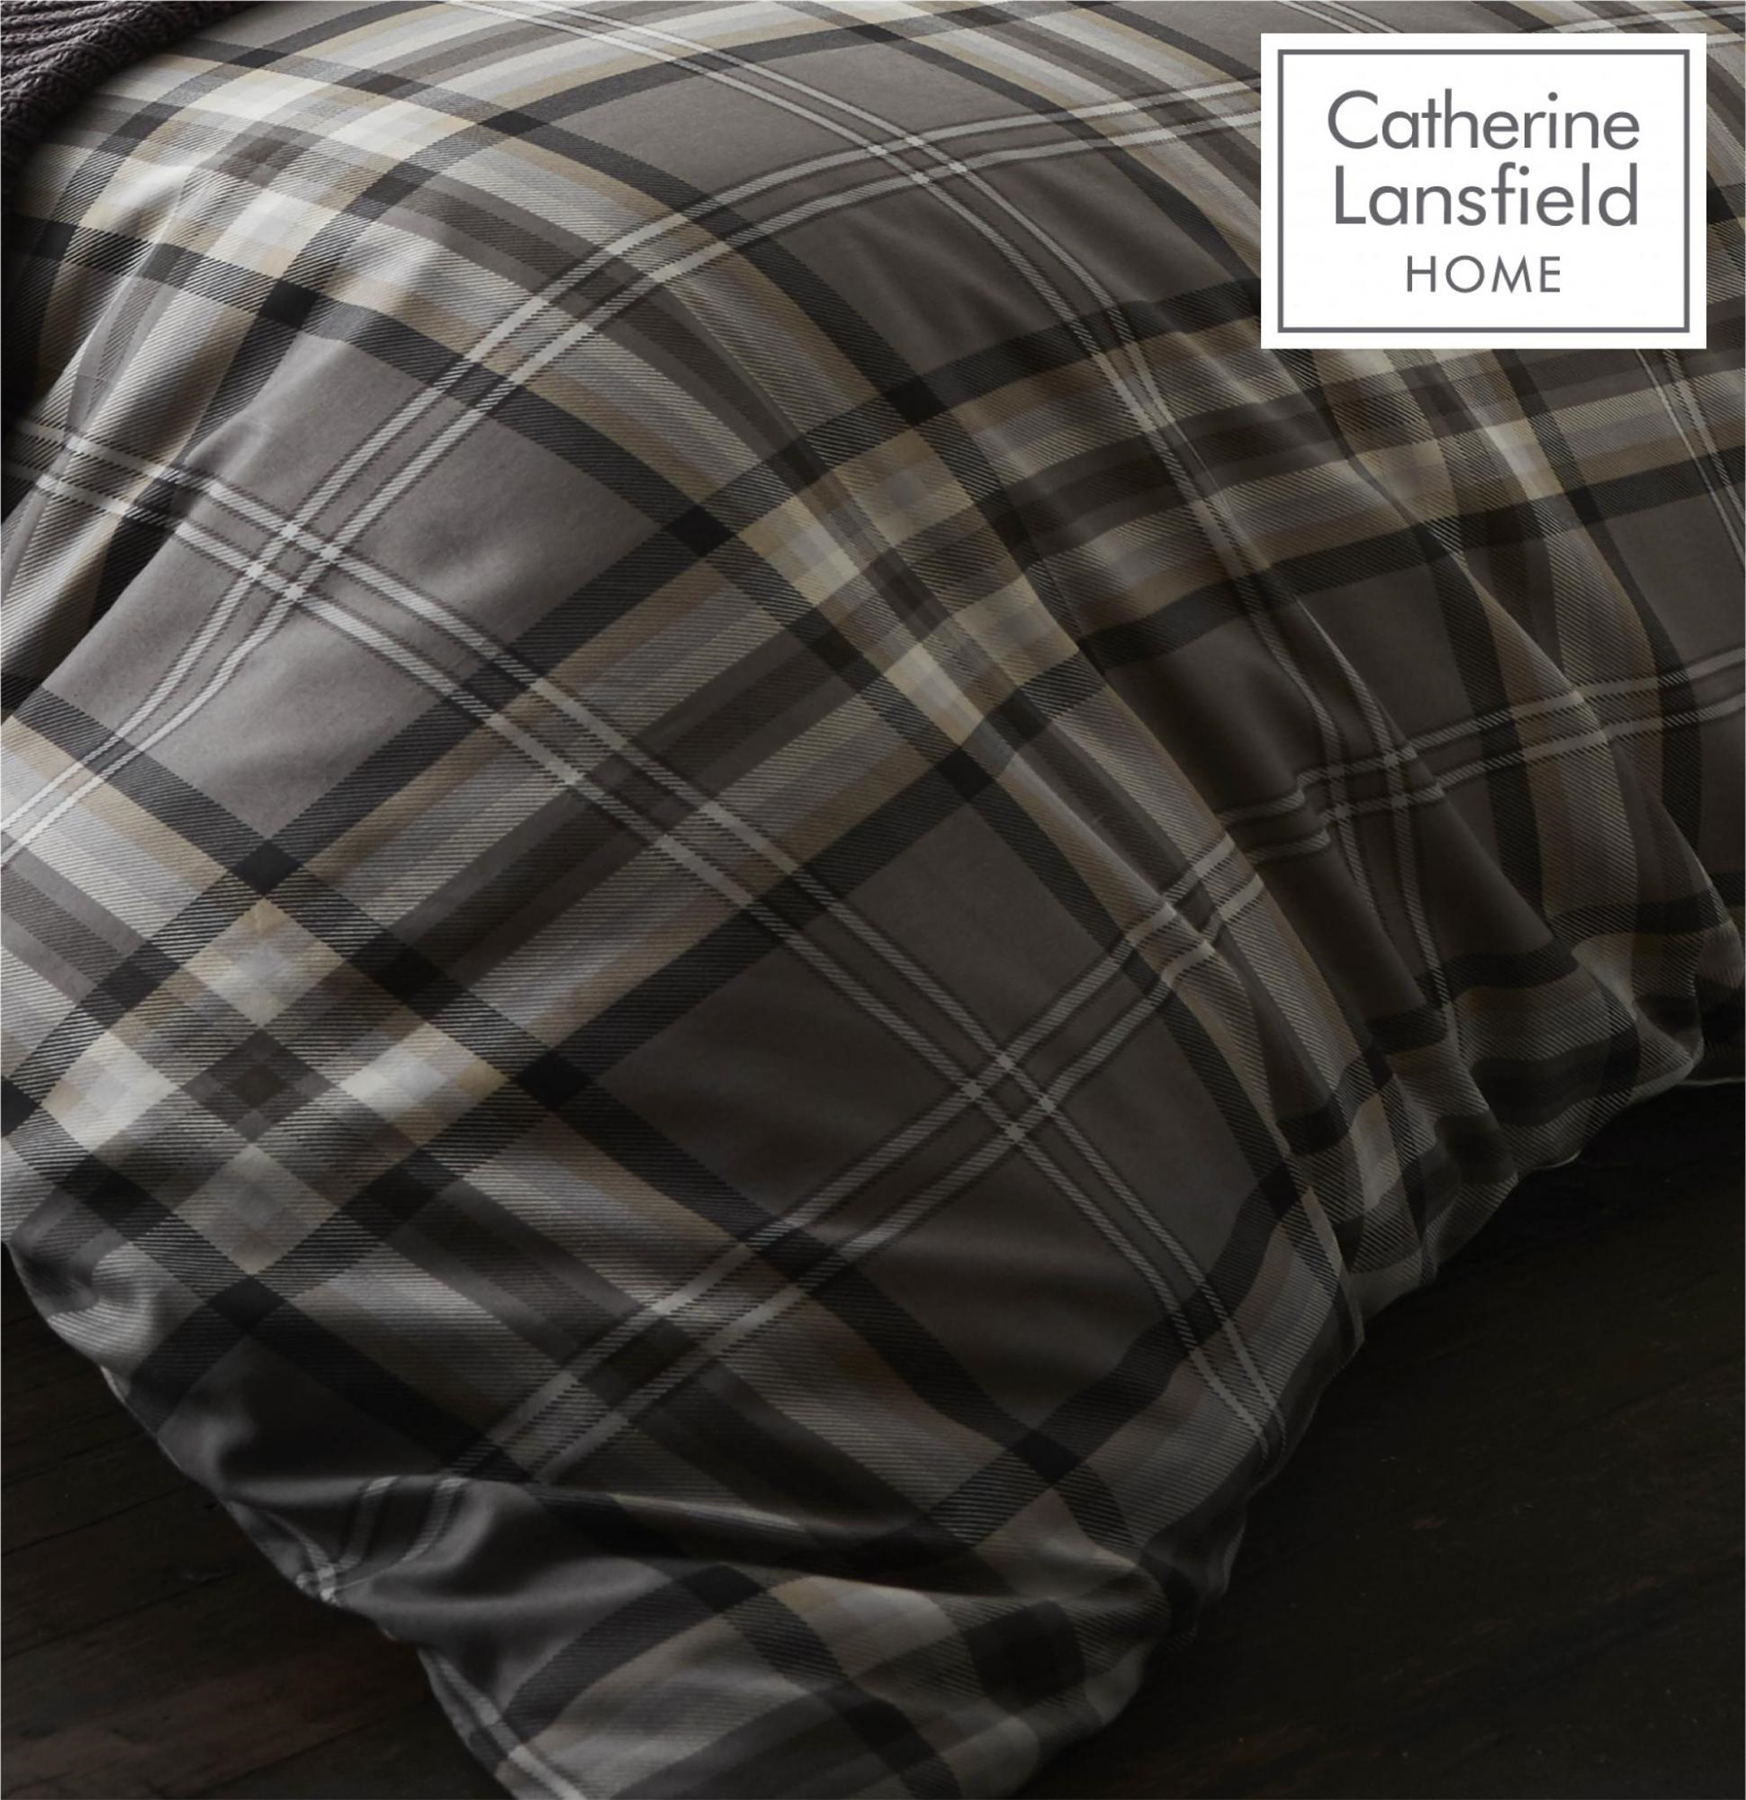 Catherine-Lansfield-Duvet-Set-Reversible-Check-Bedding-Charcoal-Pillows-Curtain thumbnail 12